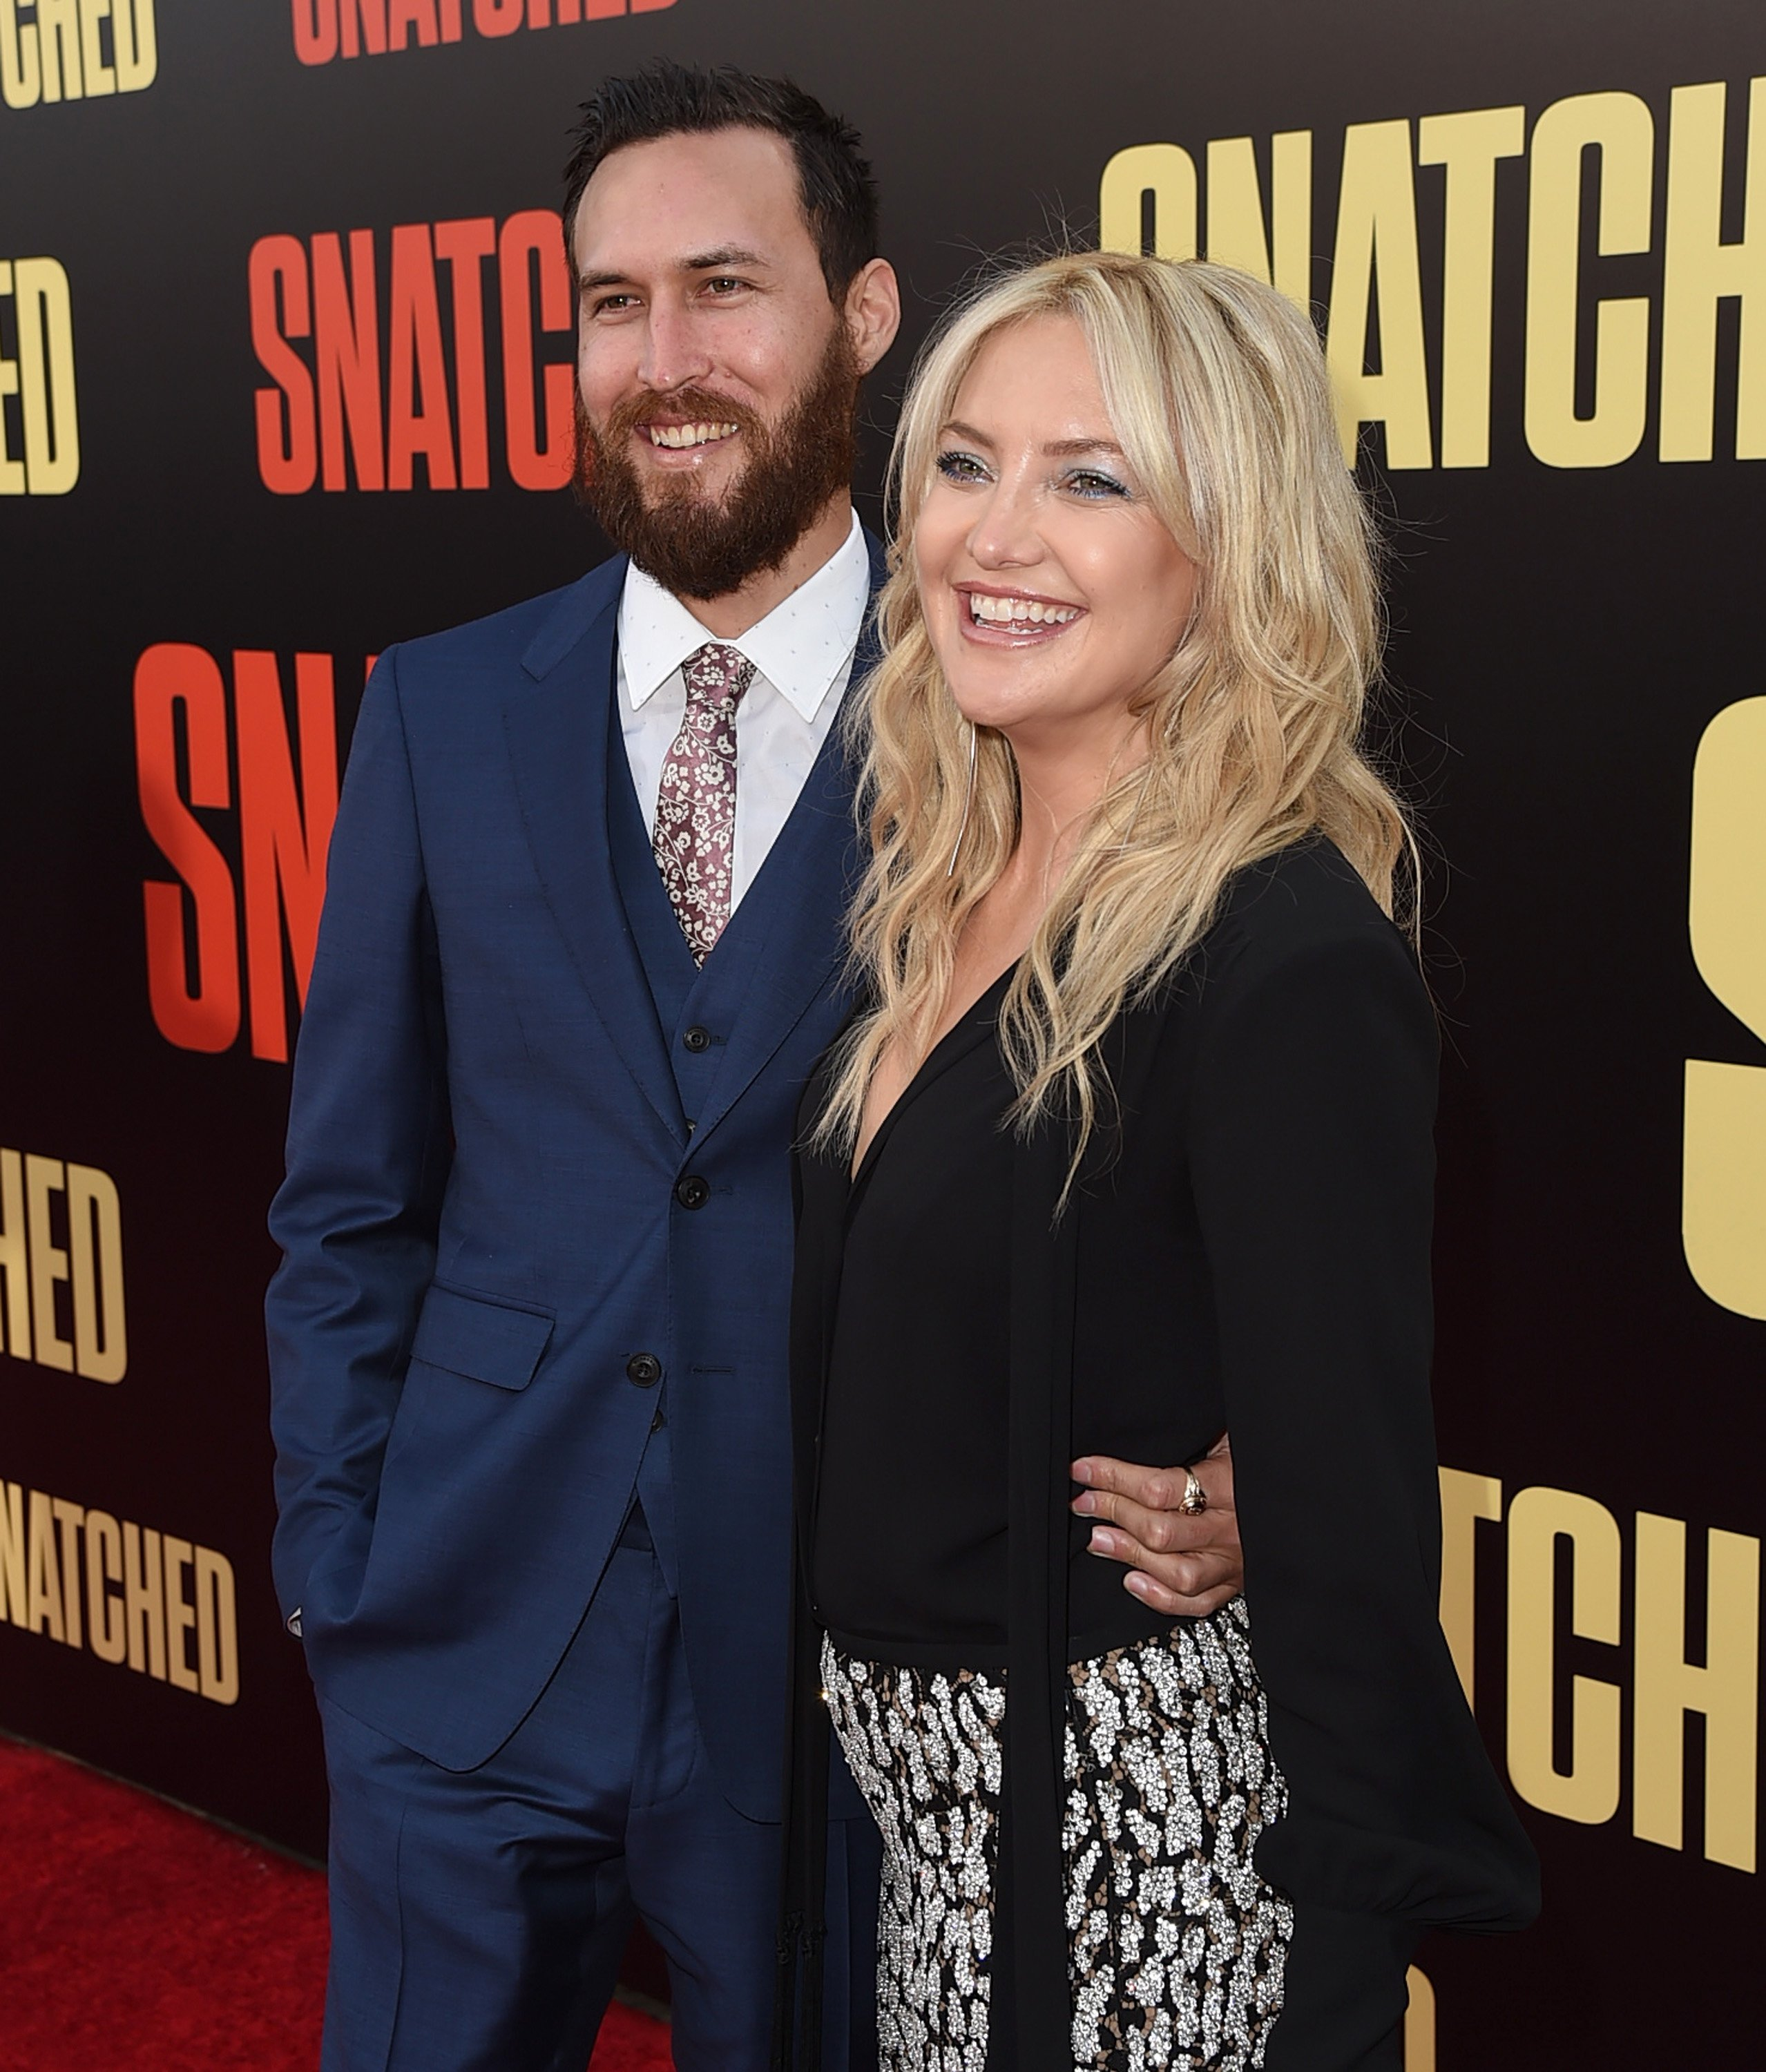 """Kate Hudson and boyfriend, Danny Fukikawa, at the """"Snatched"""" movie premiere in Hollywood, May 10, 2017. 